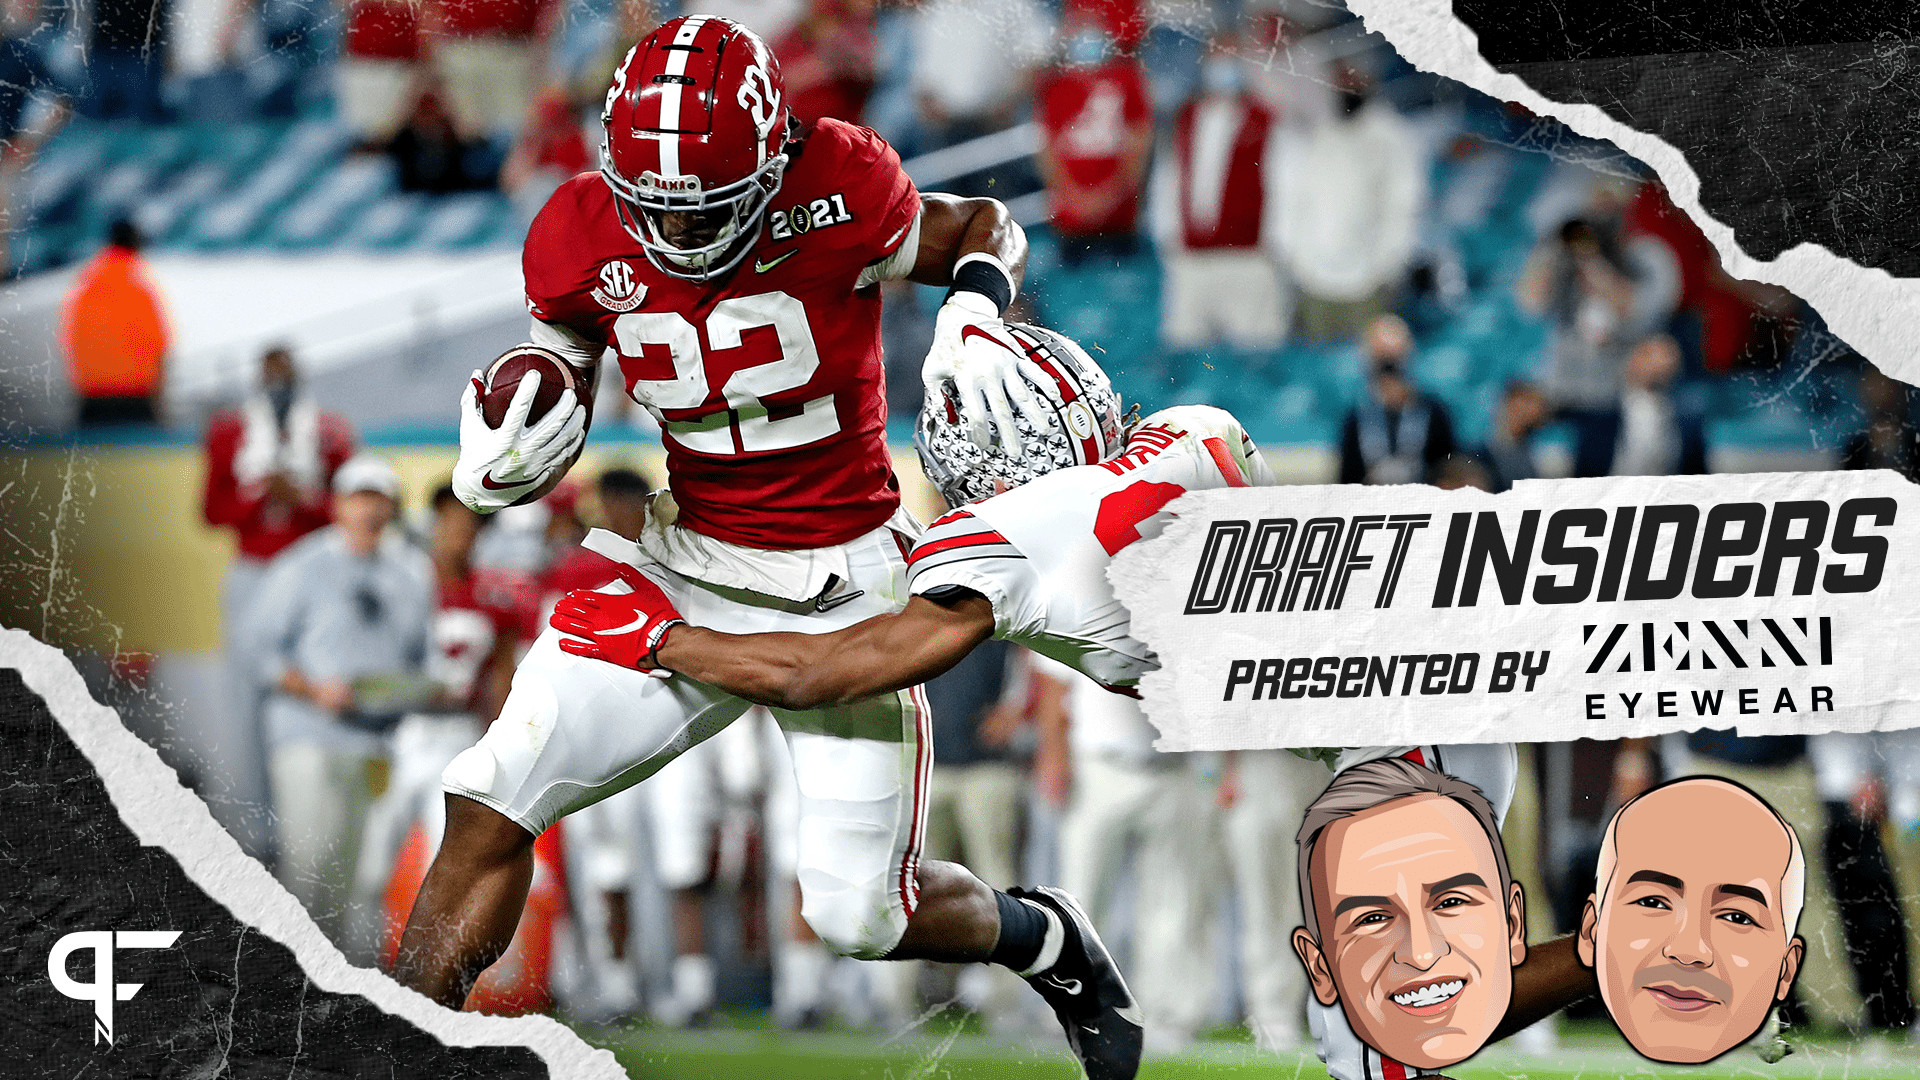 2021 NFL Draft: Latest rumors, a down year for defense, & teams looking to trade | Draft Insiders